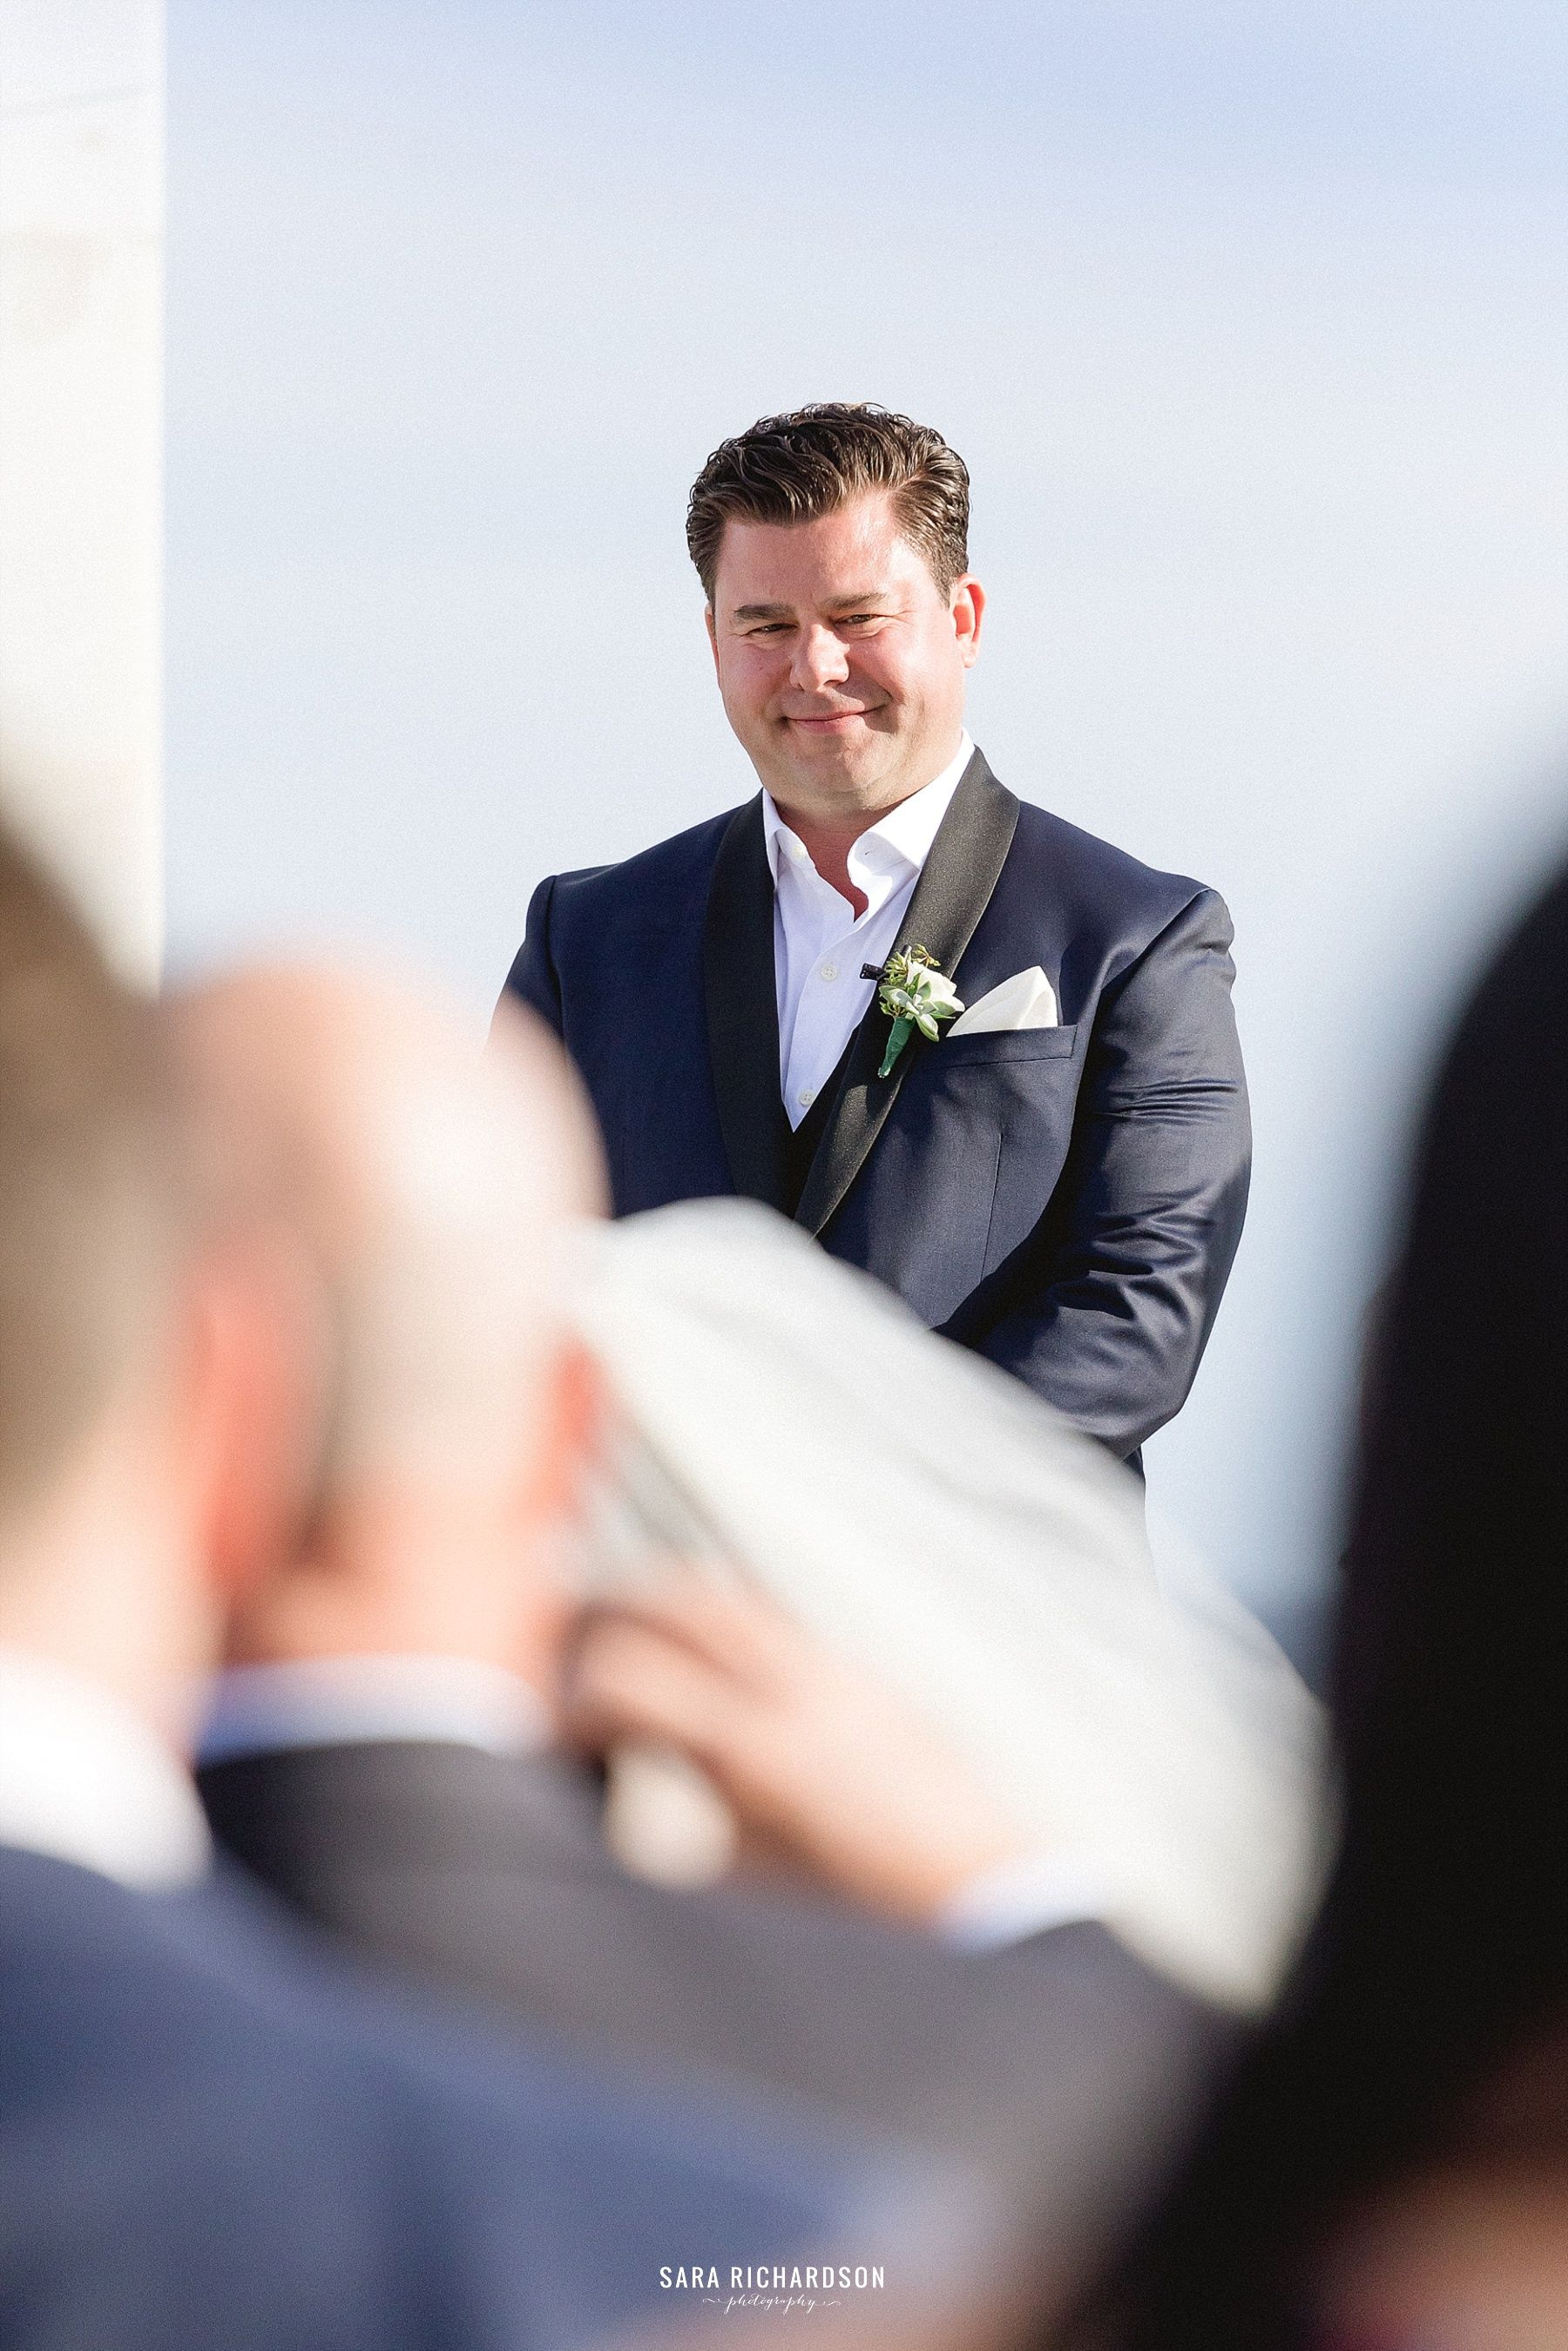 Groom waiting for the Bride as she walks down the aisle for the Ceremony. This wedding was taken place at LeBlanc in Los Cabos Mexico. Photography by Sara Richardson, wedding design by Jesse Wolff